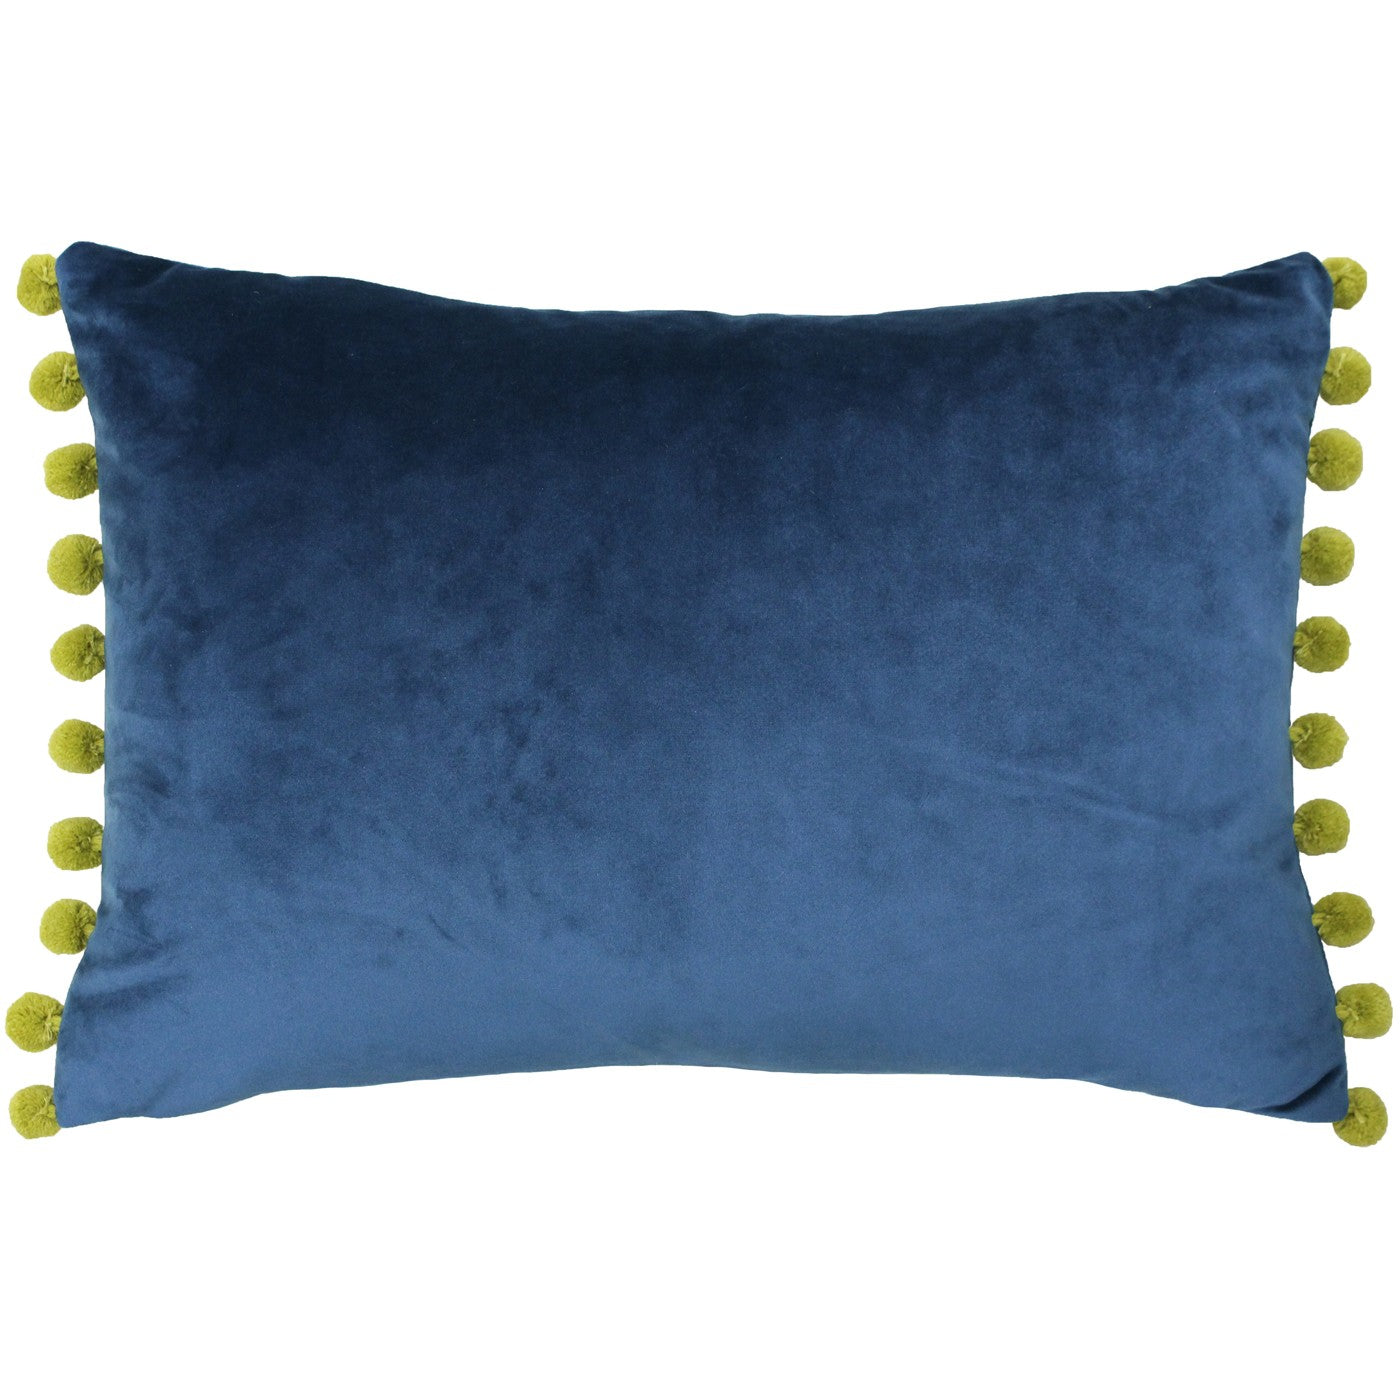 Indigo Blue Rectangle Cushion with Bamboo coloured Pom Poms